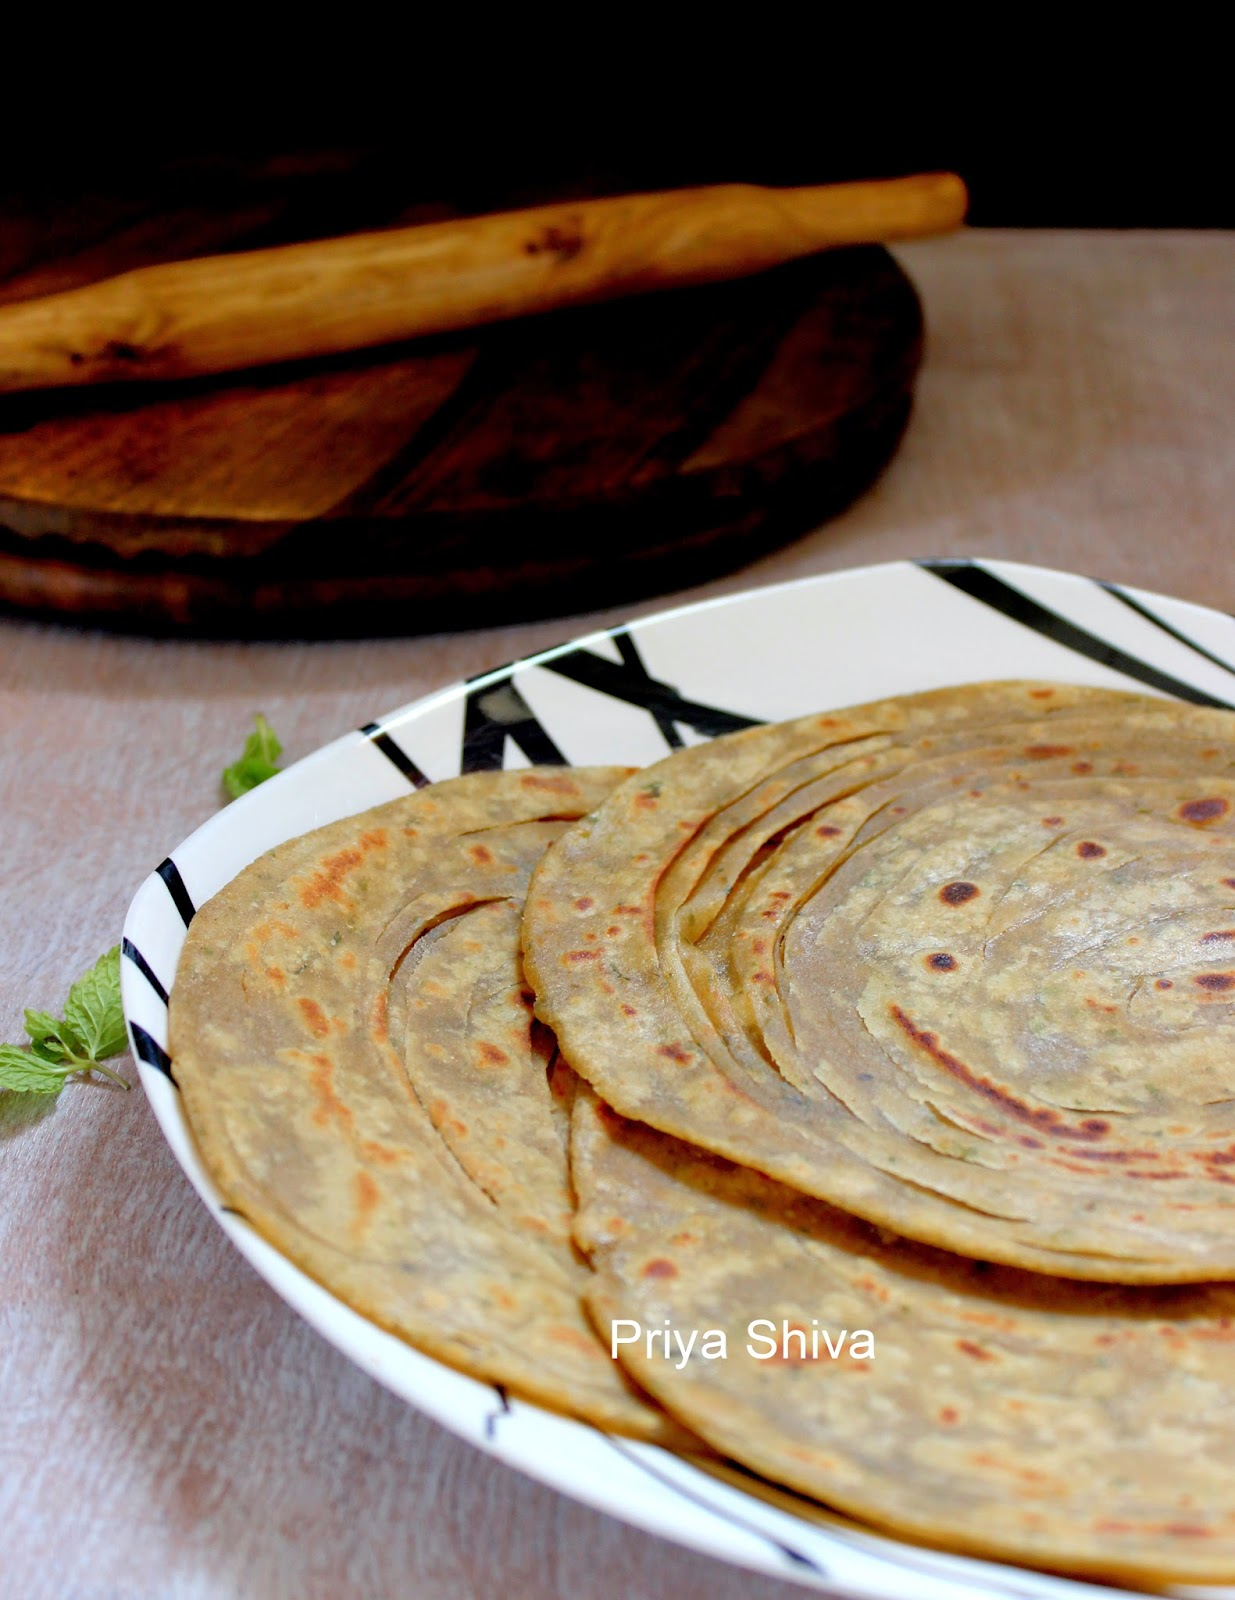 Lachha Paratha Layered Griddle Cooked Flatbread Recipes — Dishmaps